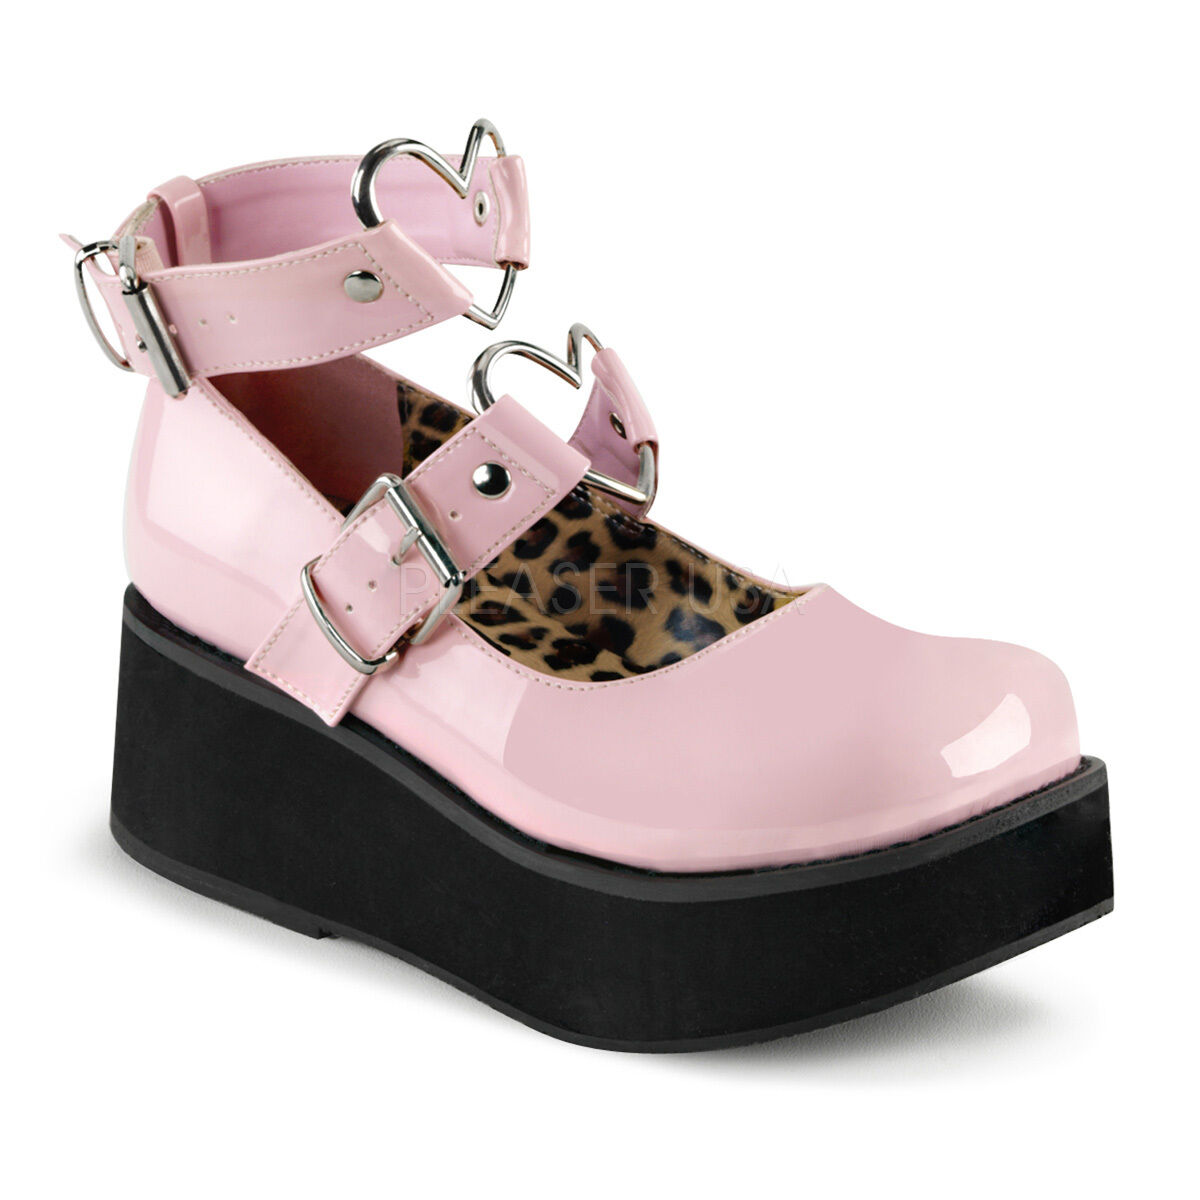 Demonia 2.25 2.25 2.25  Pink Patent Platform Dolly Heart Strap shoes Anime Lolita 6-12 220484